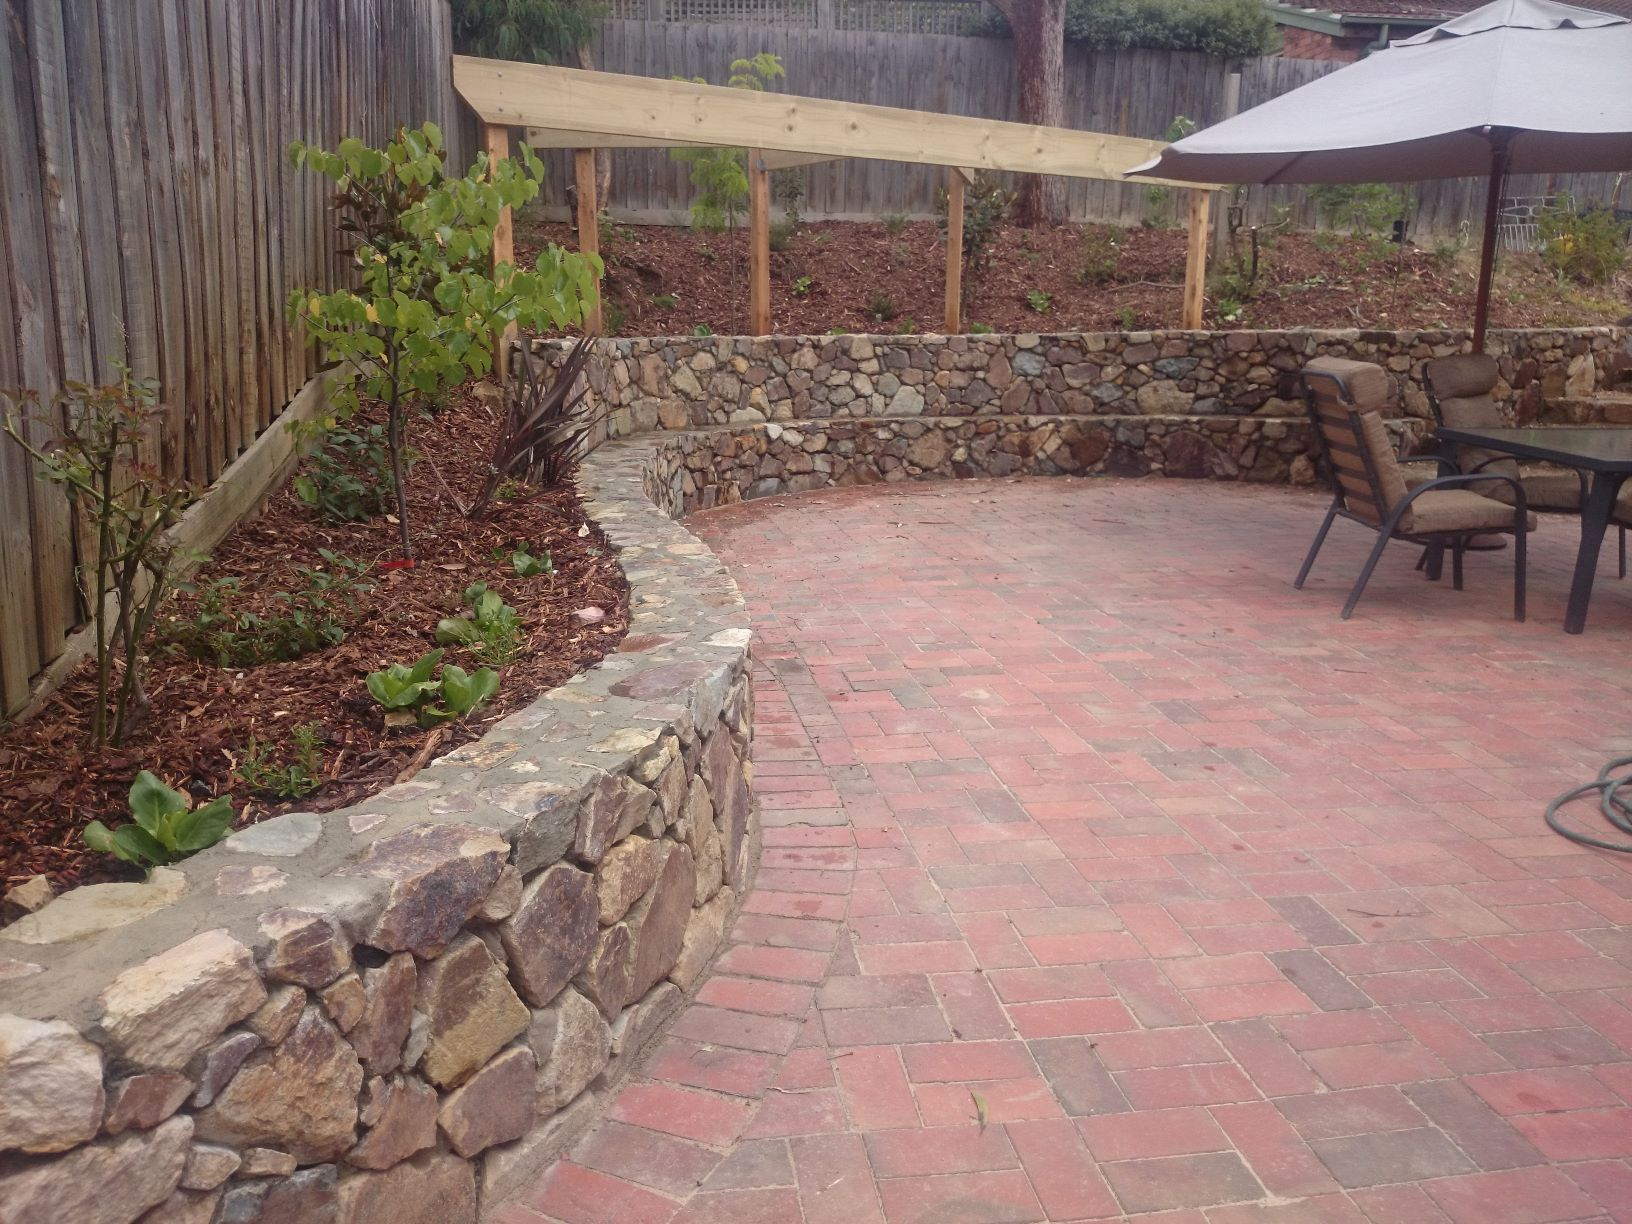 Coldstream Stone retaining wall with seat, Timber frame for climber, curved retaining wall, Eltham retaining wall, stone retaining wall, Eltham entertaining area.